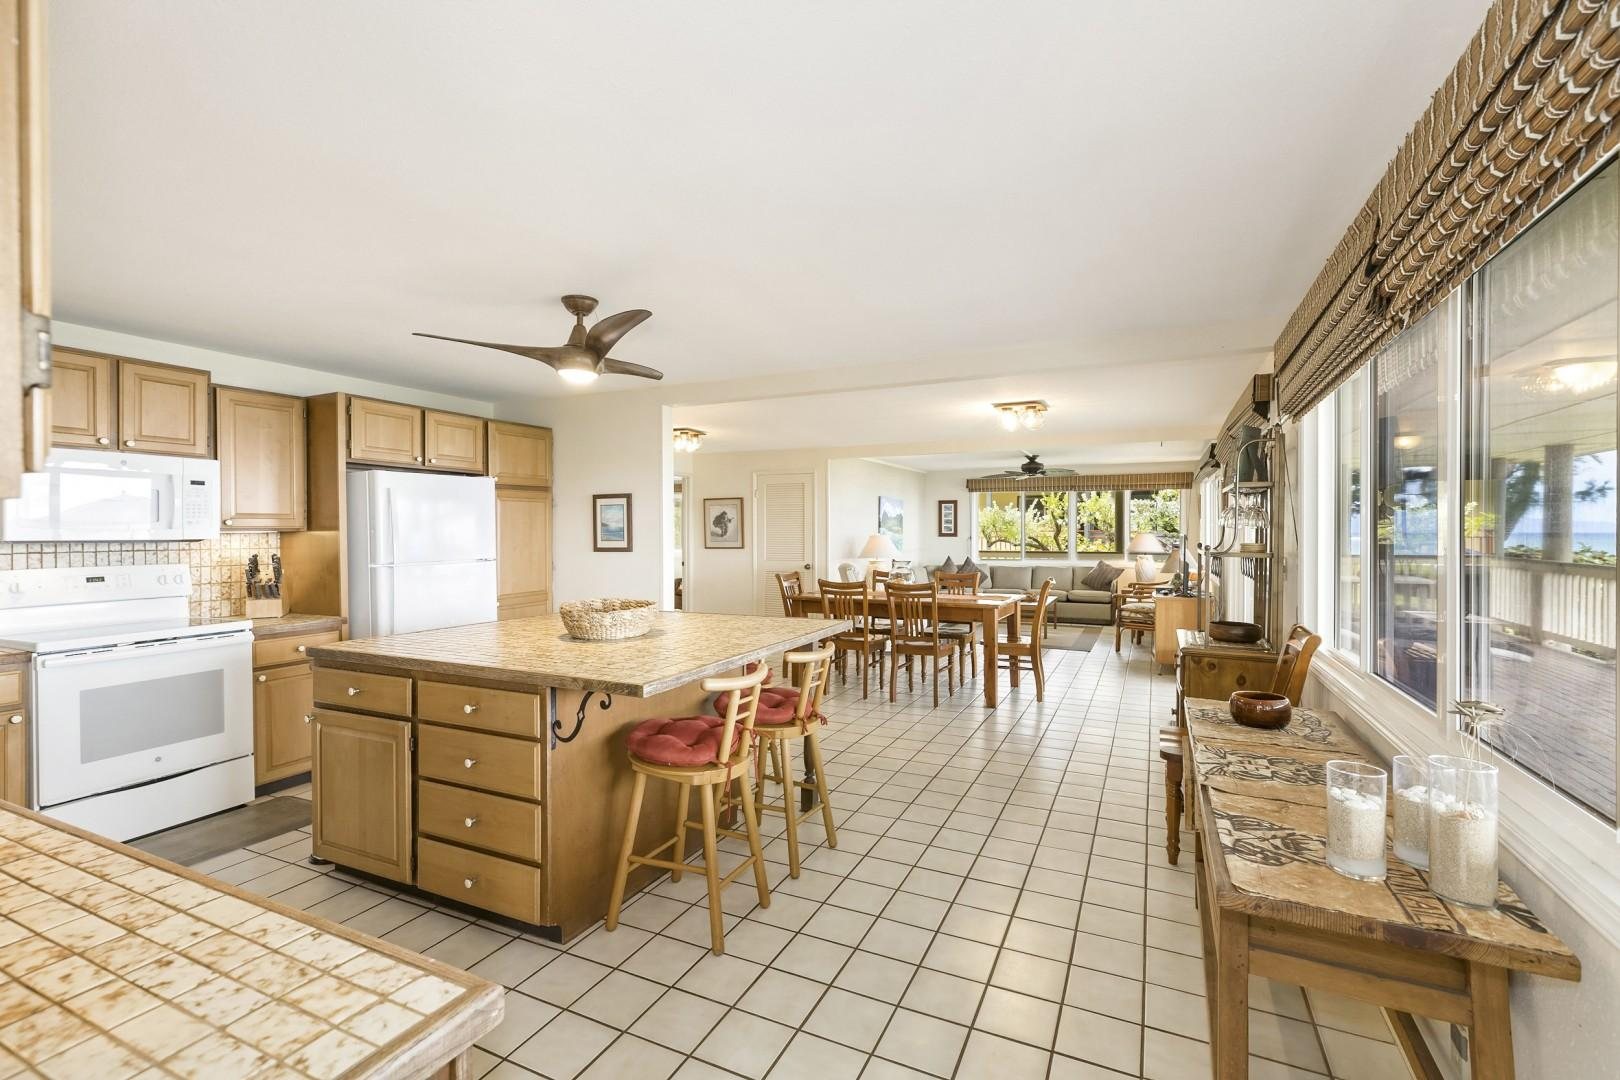 Large kitchen with tile floors, great for cooking family meals together.